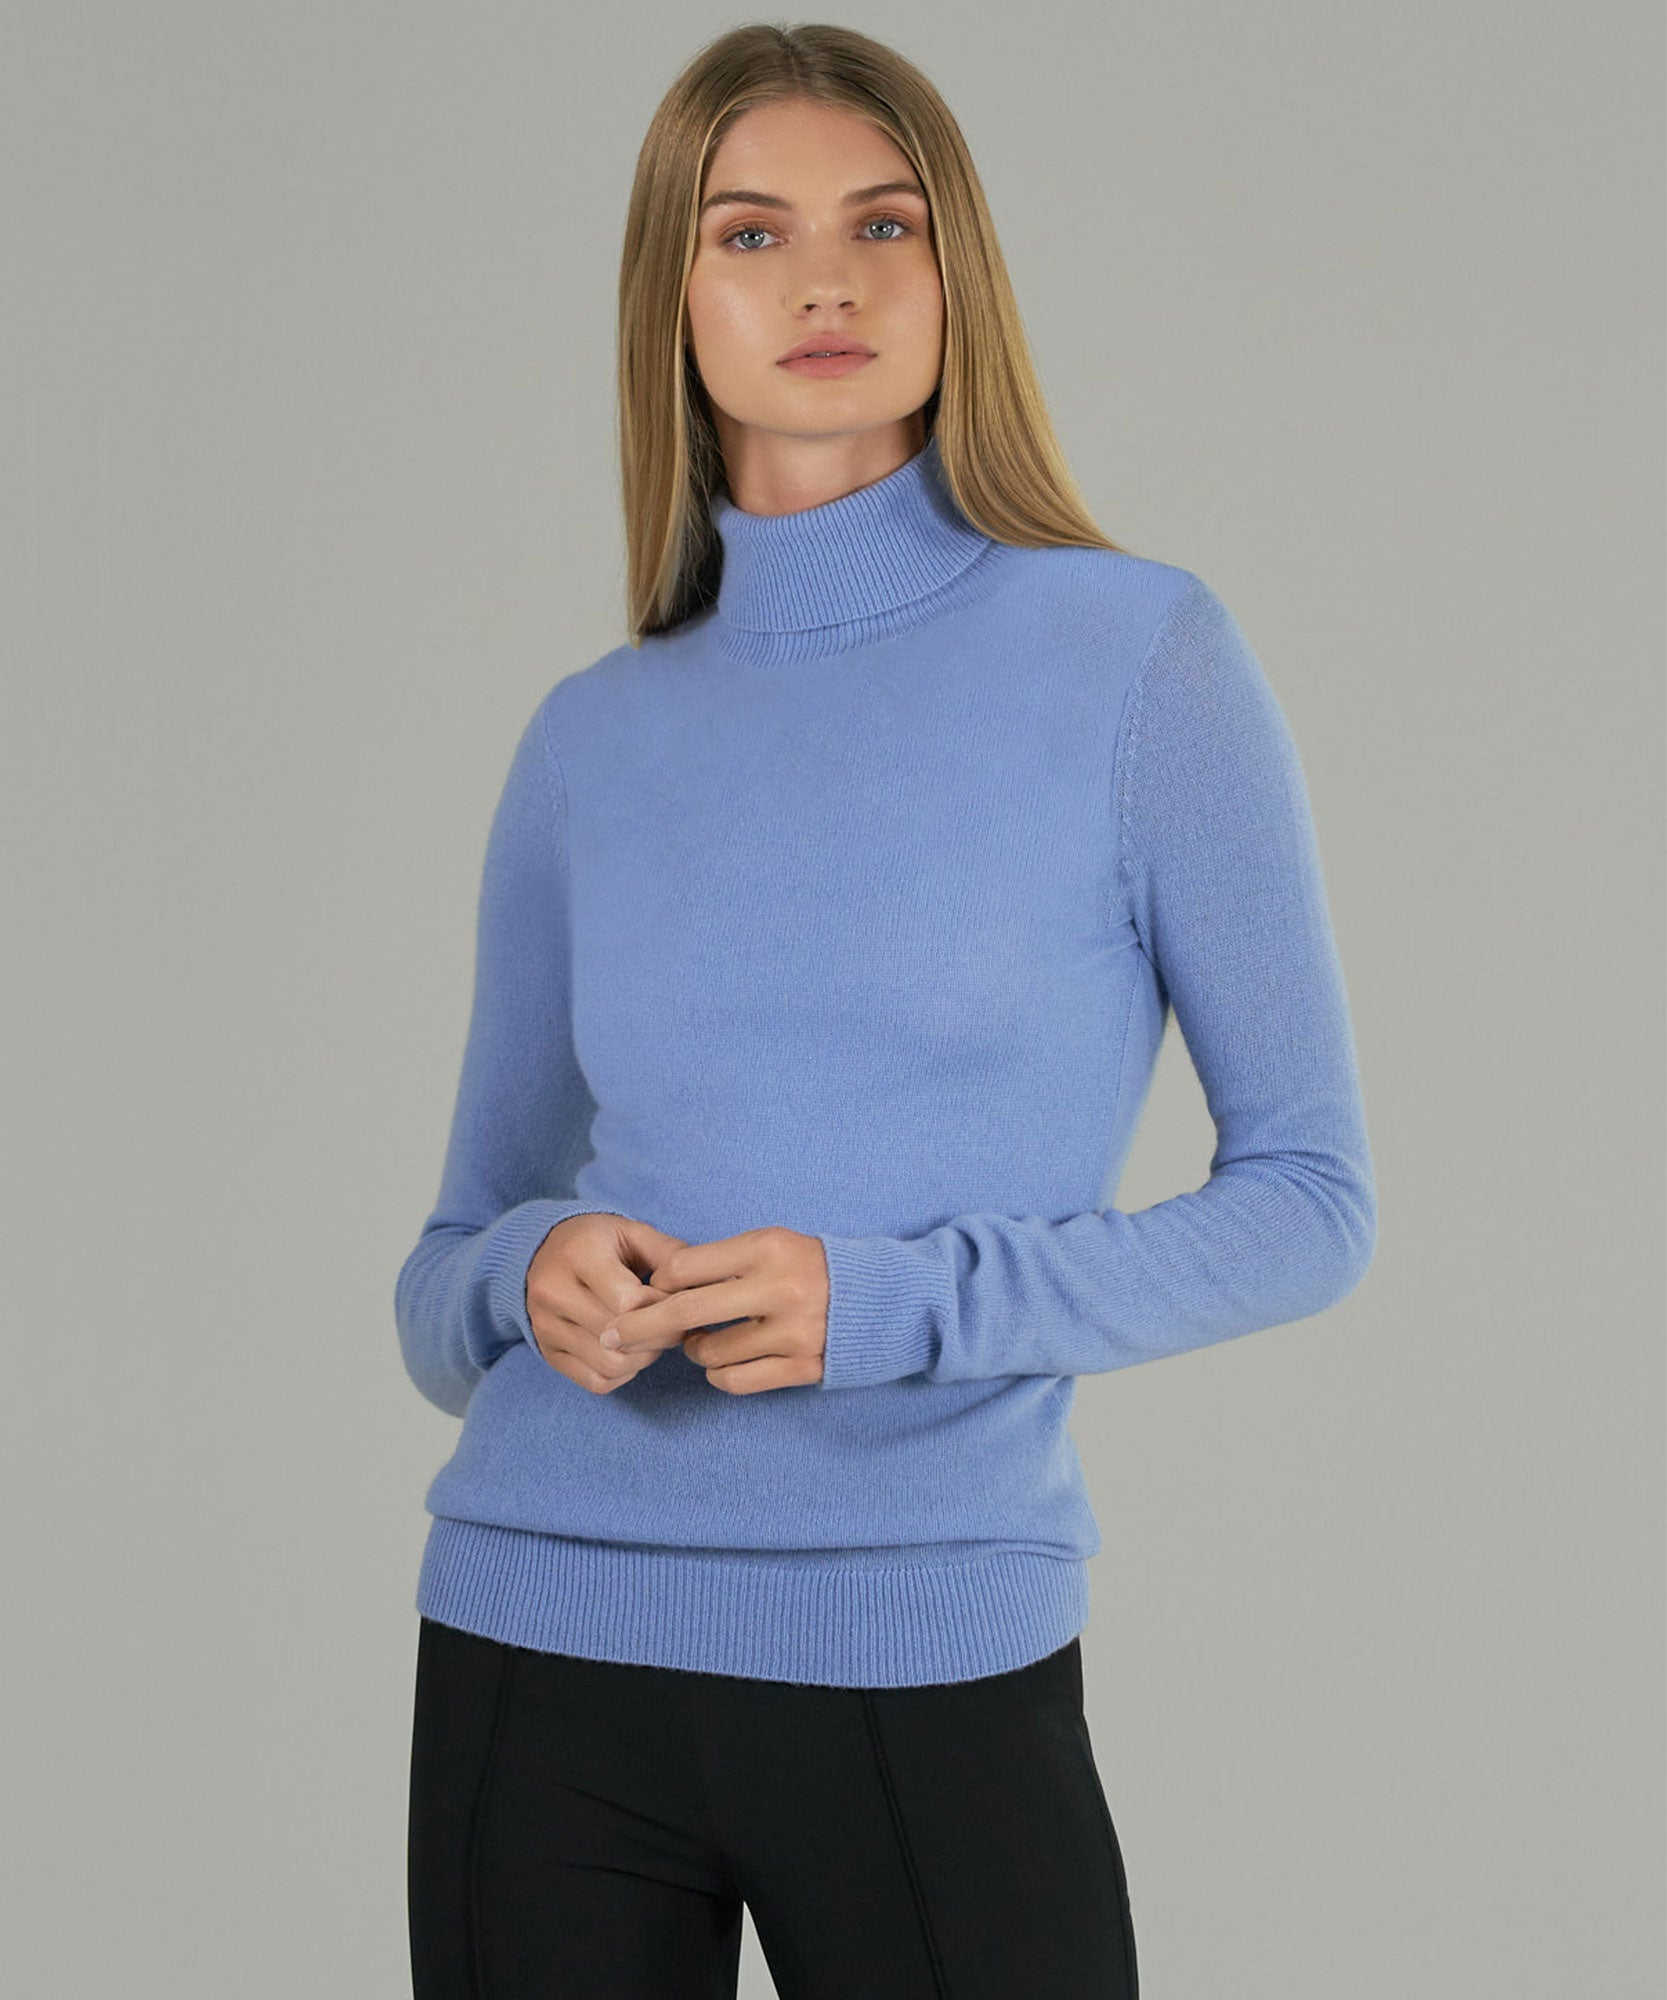 English Blue Cashmere Long Sleeve Turtleneck Sweater - Women's Sweater by ATM Anthony Thomas Melillo